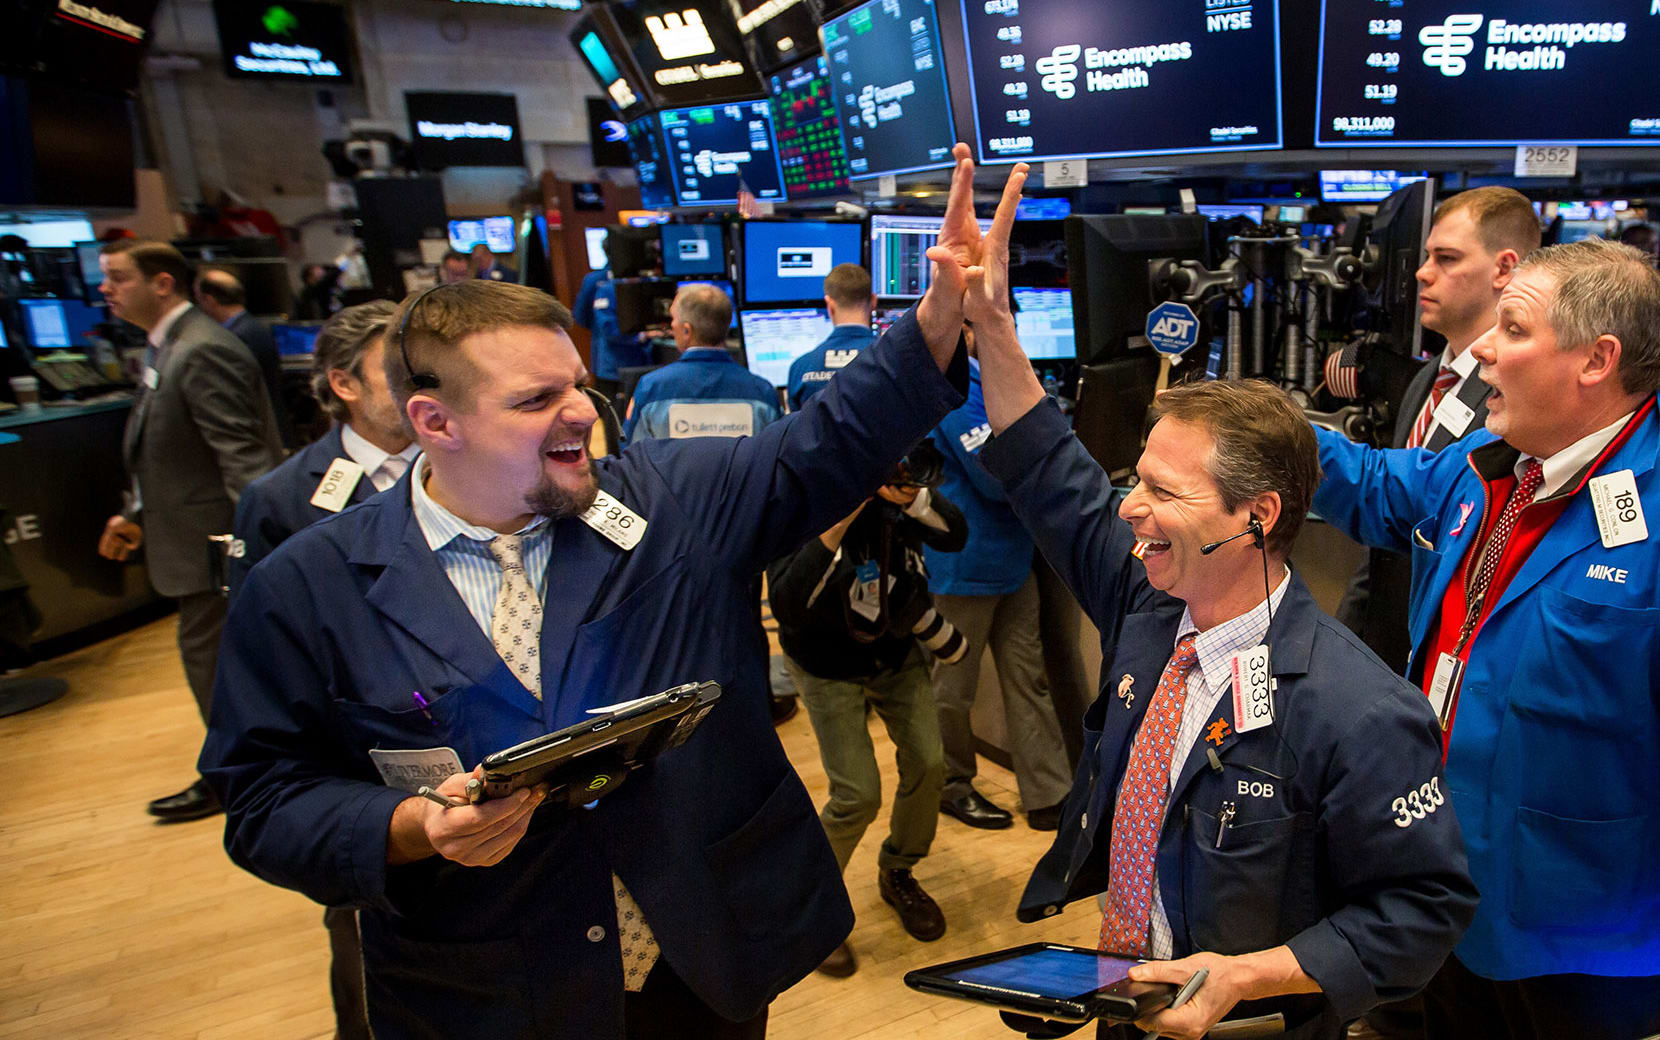 The stock market boomed in 2019. Here's how it happened